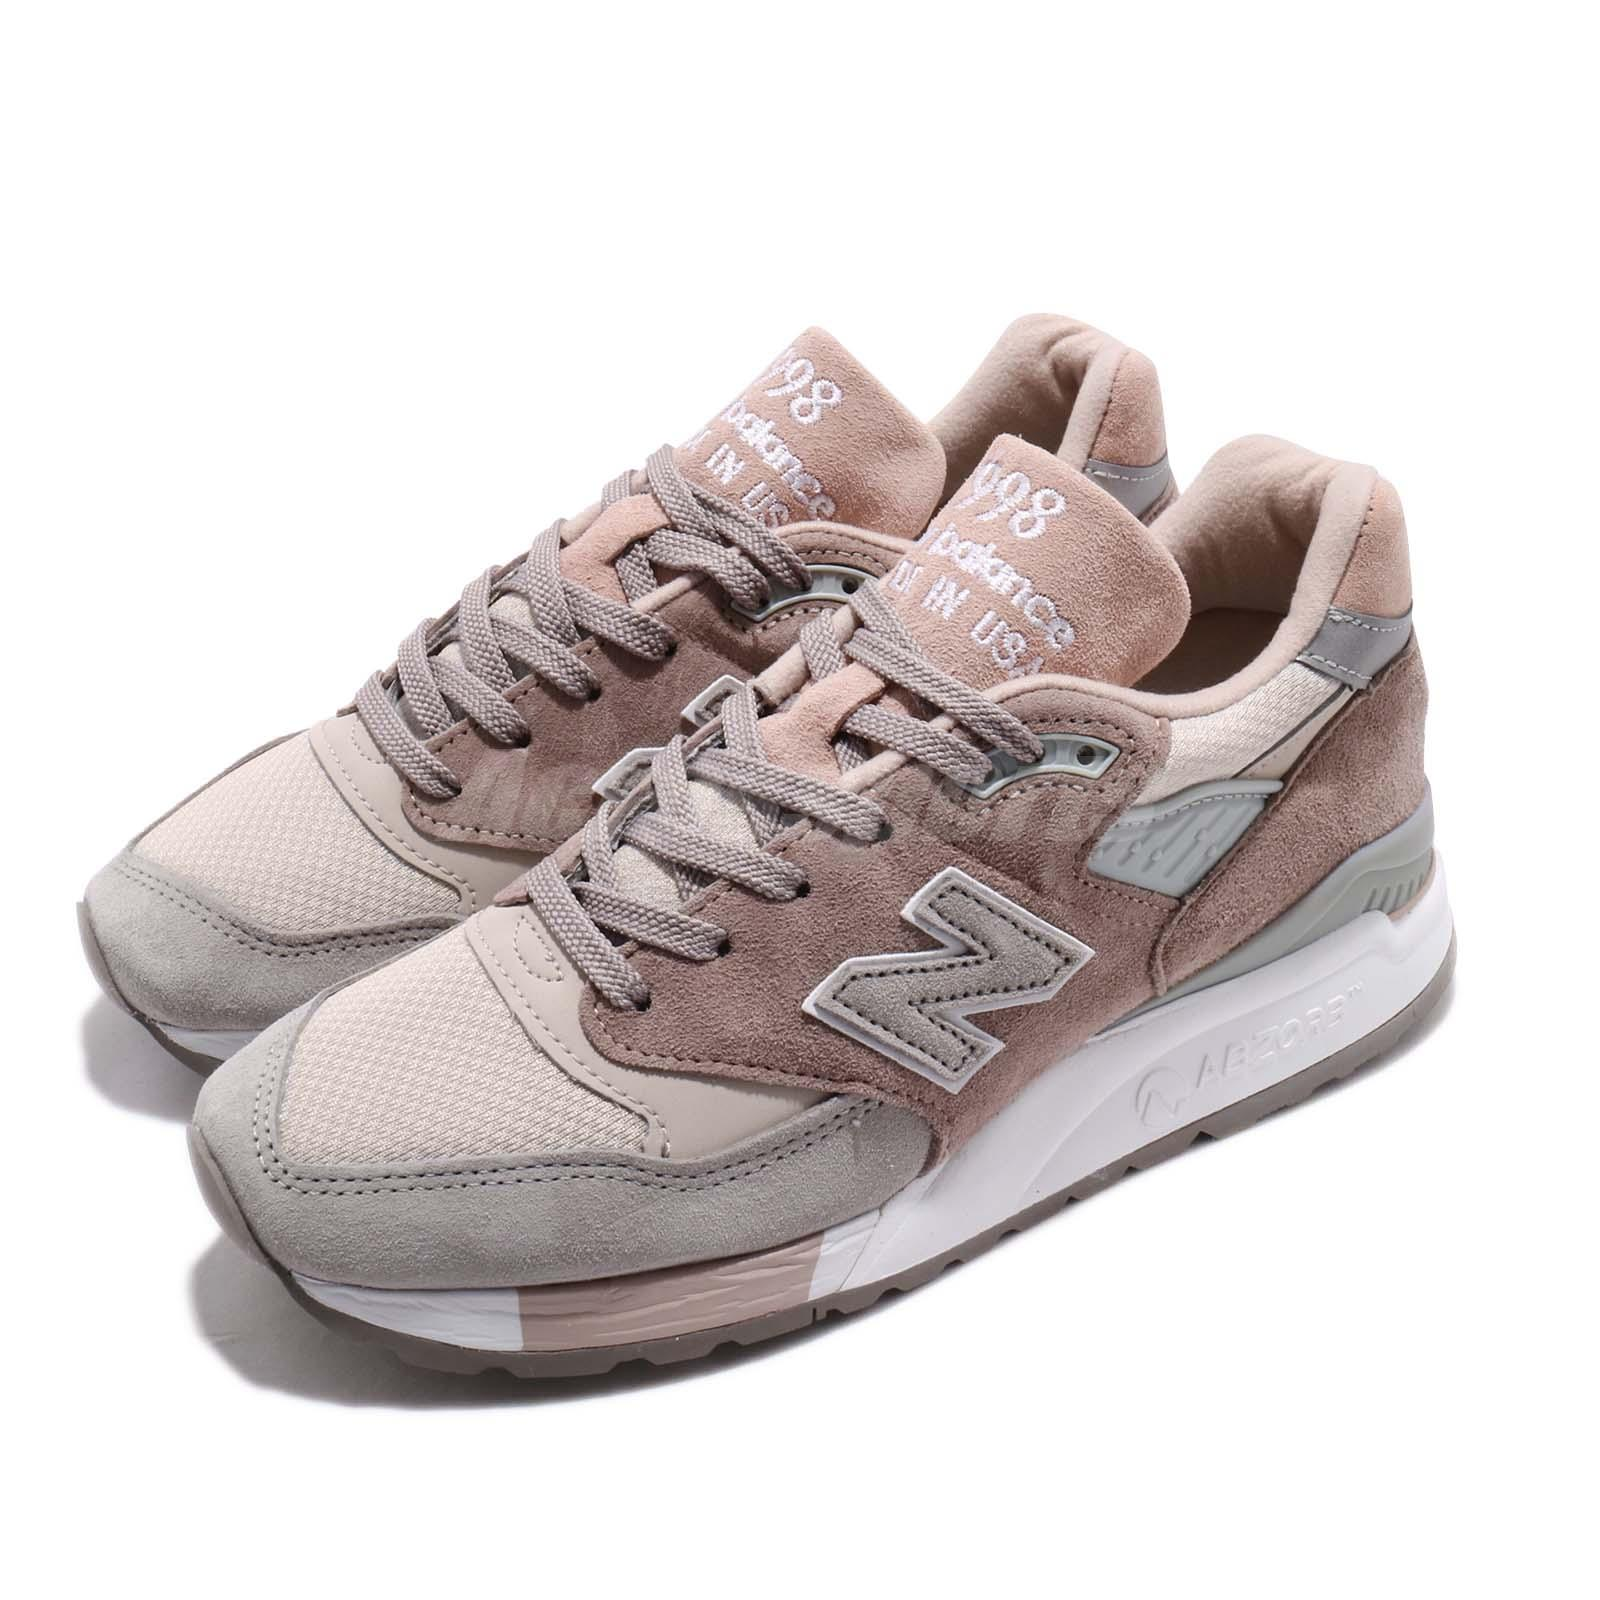 Details about New Balance W998AWA B Made In USA Pink Grey White Women Shoes Sneakers W998AWAB